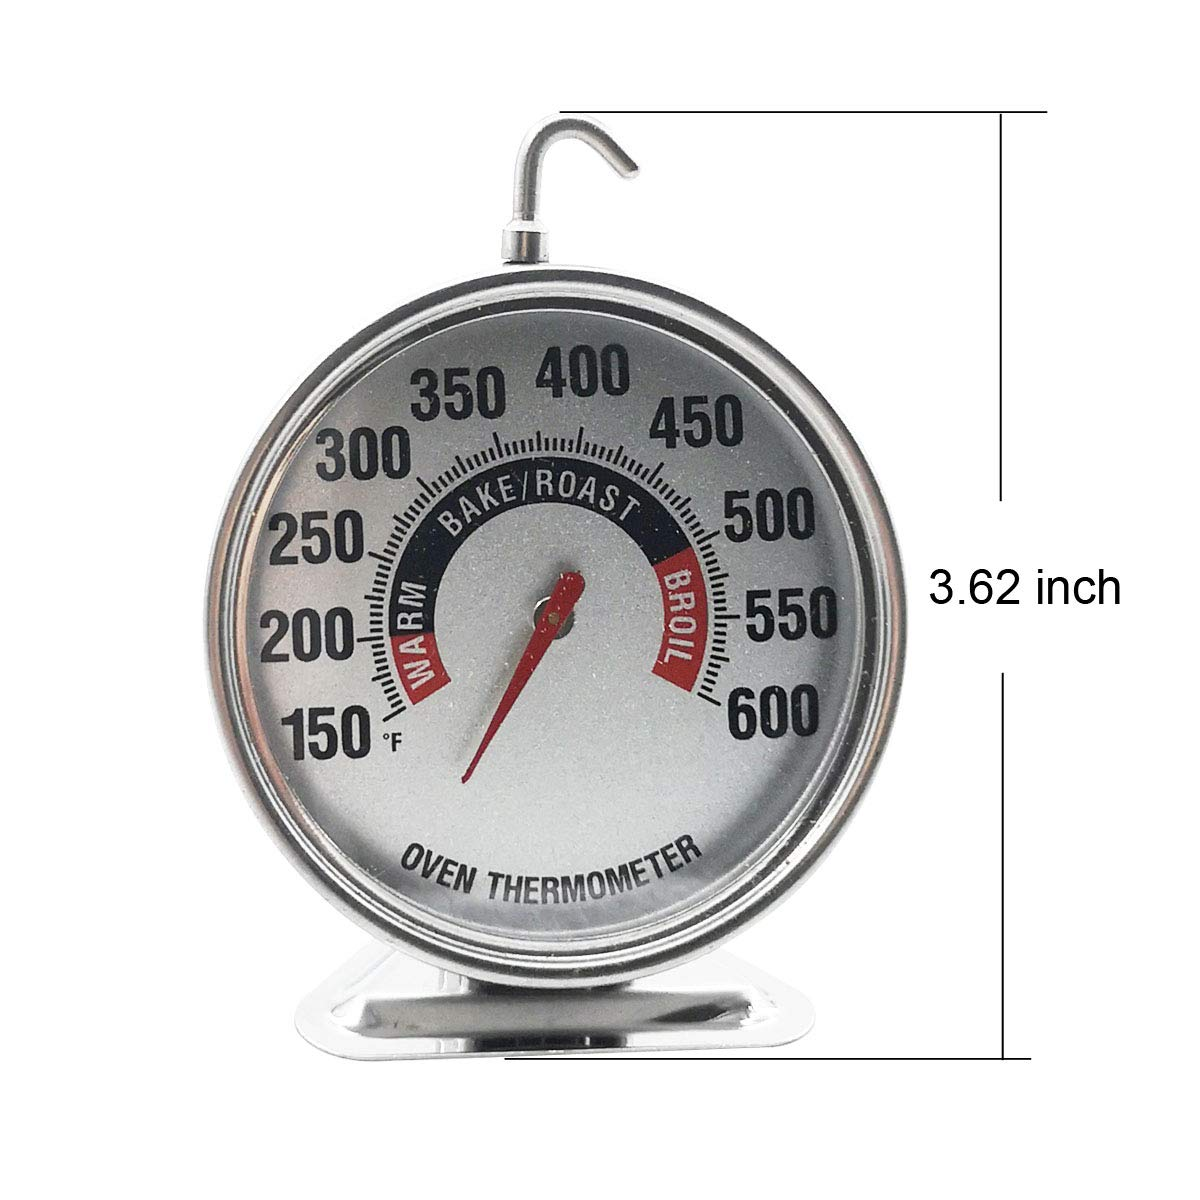 Extra Large Dial Oven Thermometer Instant Read with Hook and Panel Base Hang or Stand in Oven//Grill for Cooking or BBQ